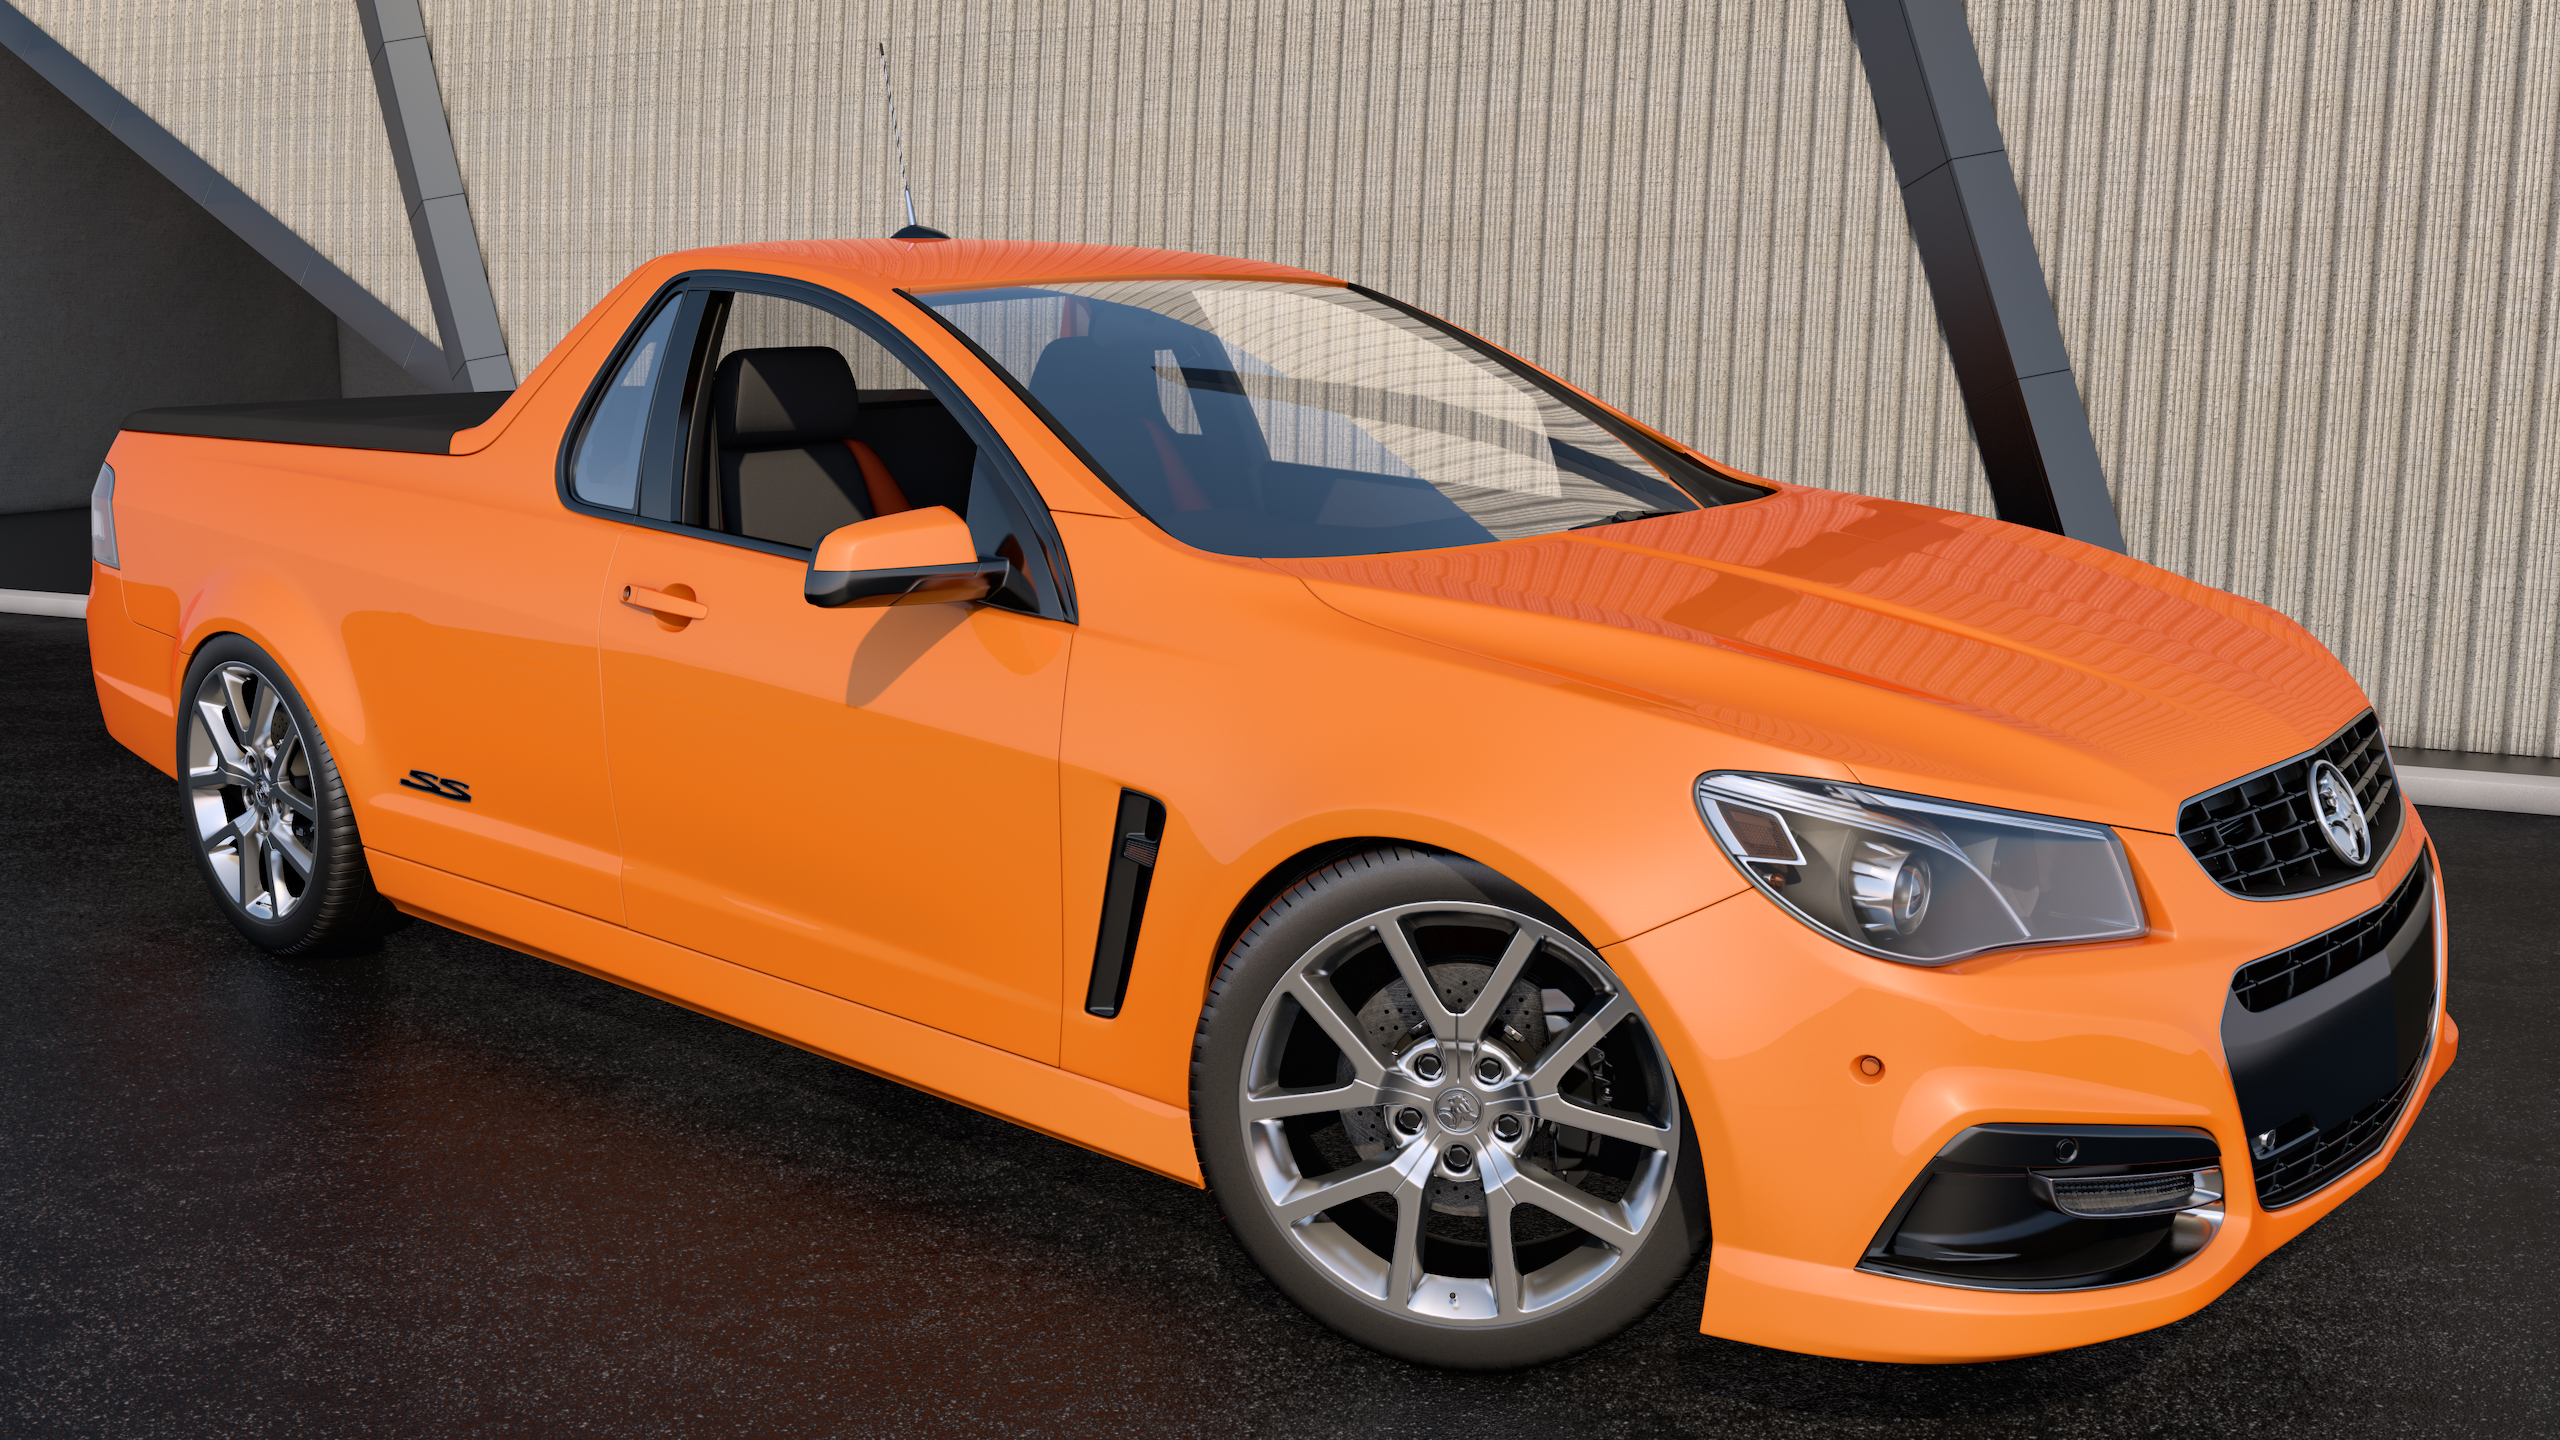 2014 holden vf commodore gallery hd cars wallpaper 2014 holden vf commodore ute ssv by samcurry on deviantart 2014 holden vf commodore ute ssv vanachro Choice Image